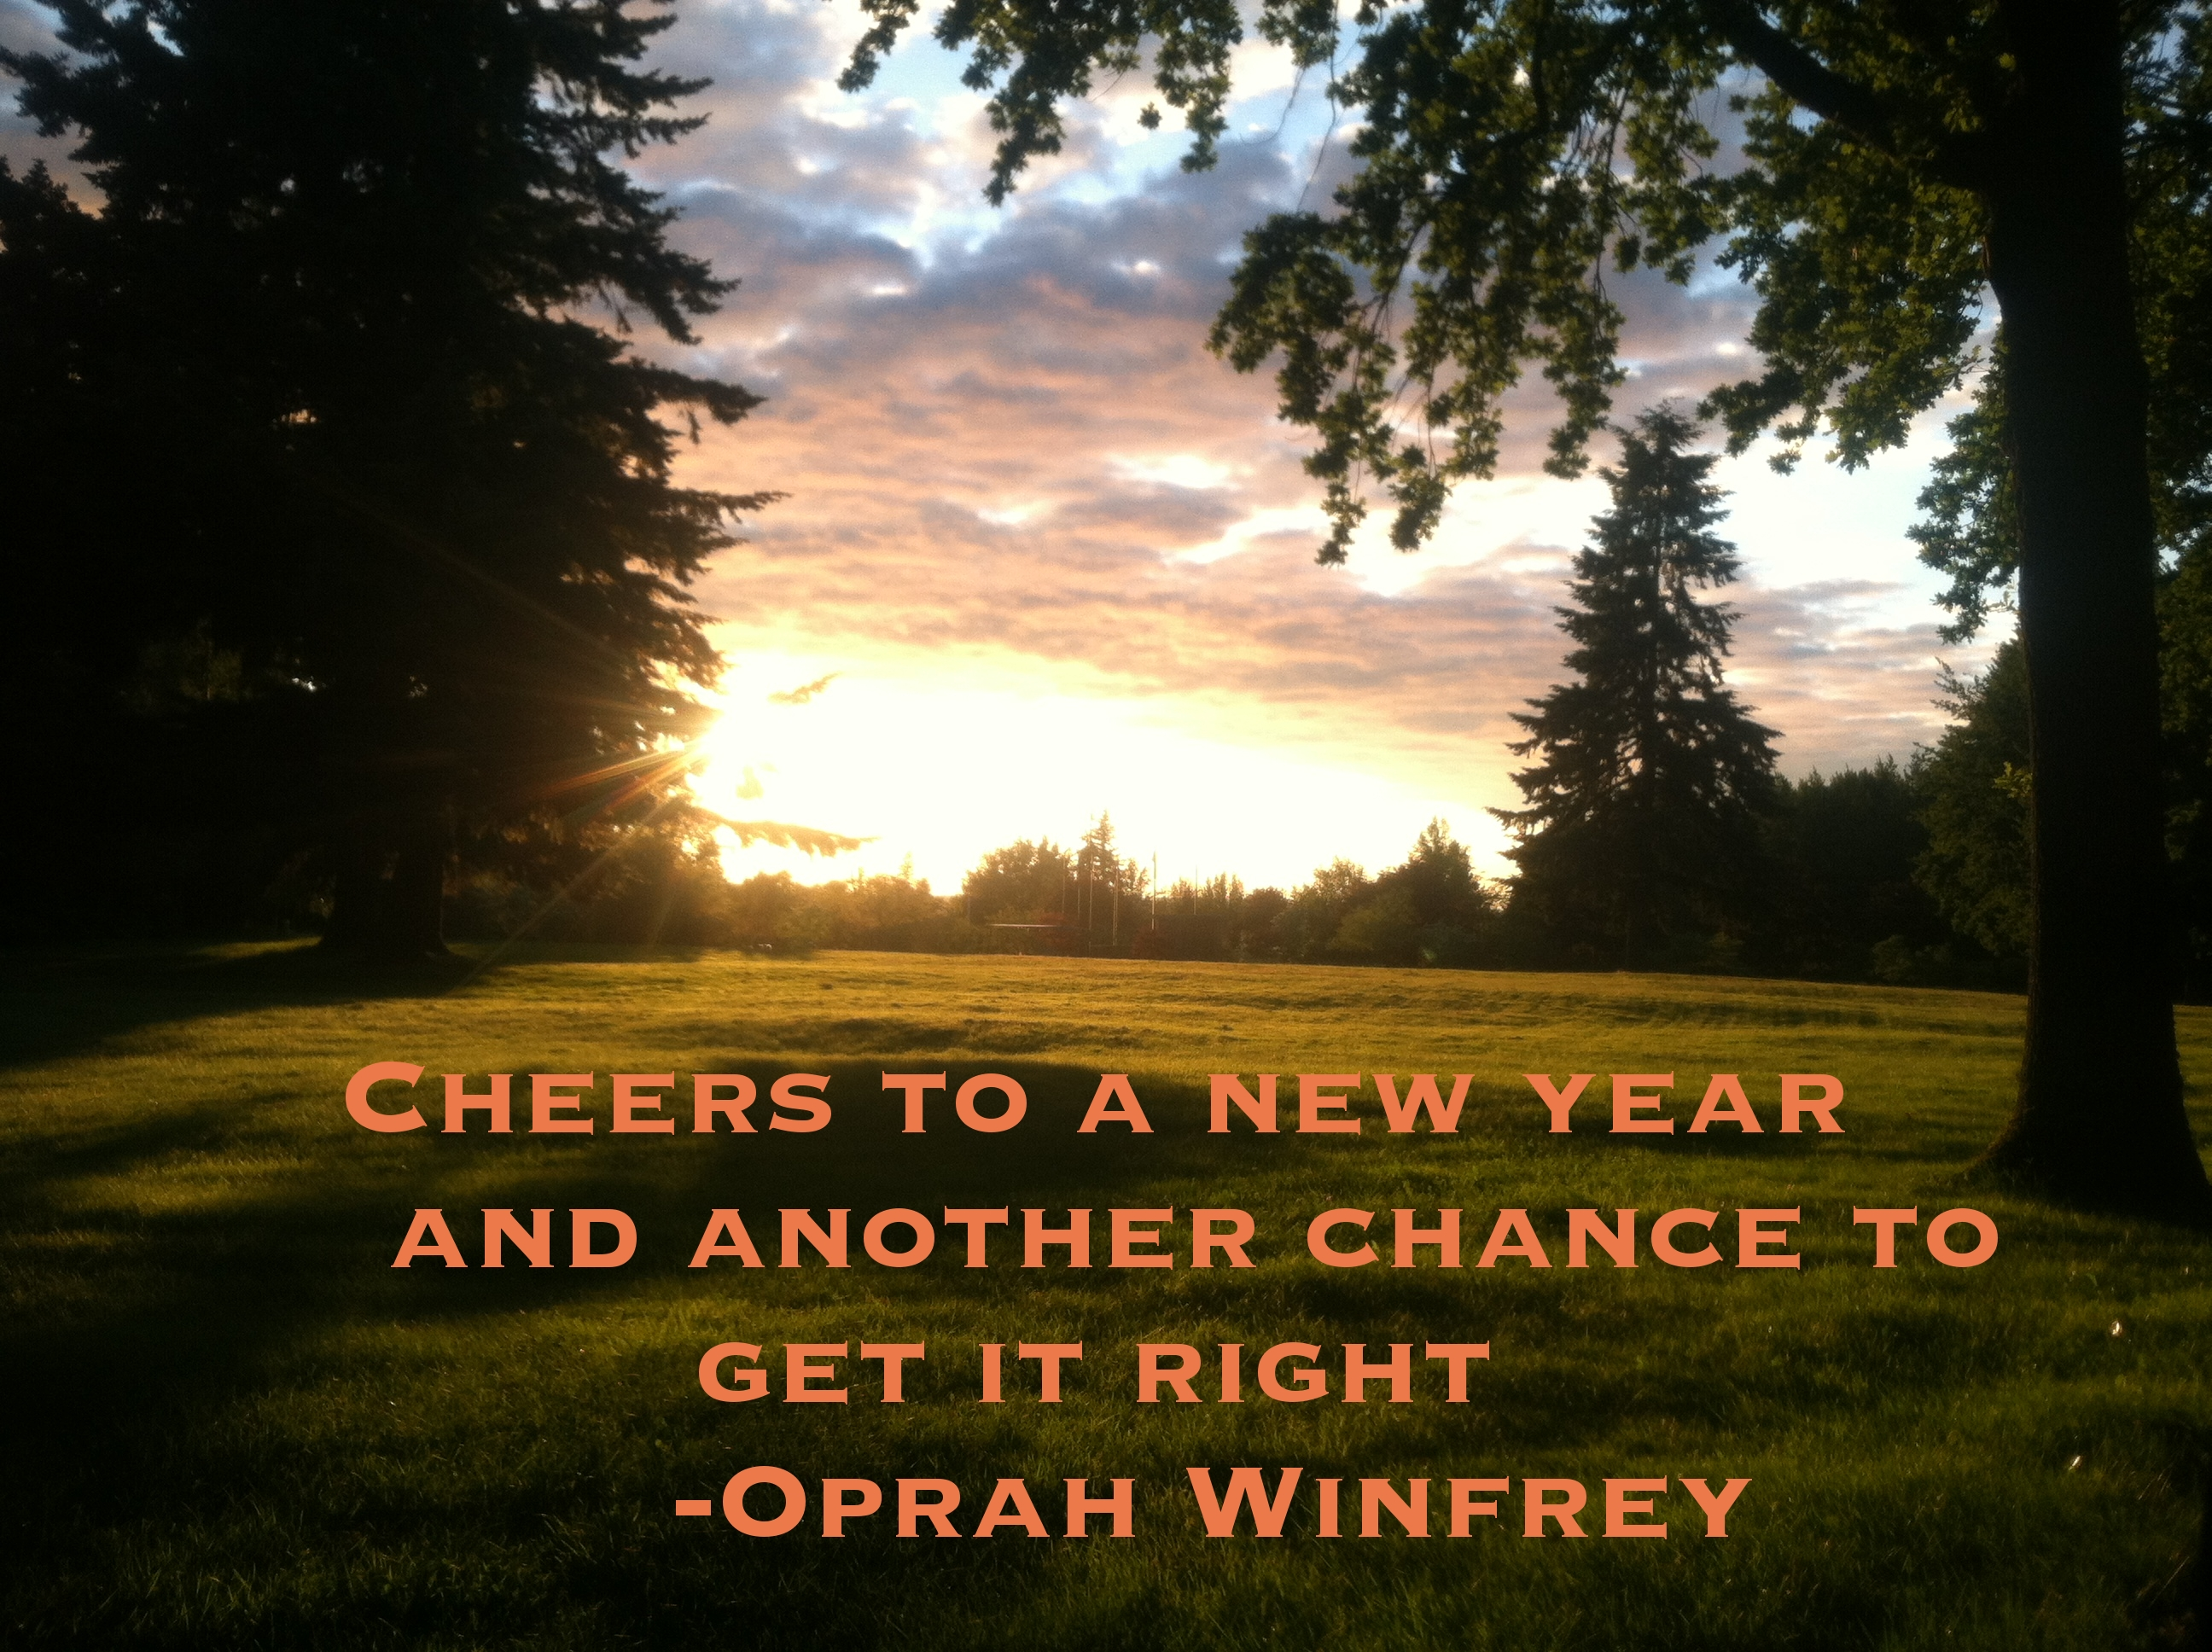 Cheers to a new year and another chance to get it right. -Oprah Winfrey